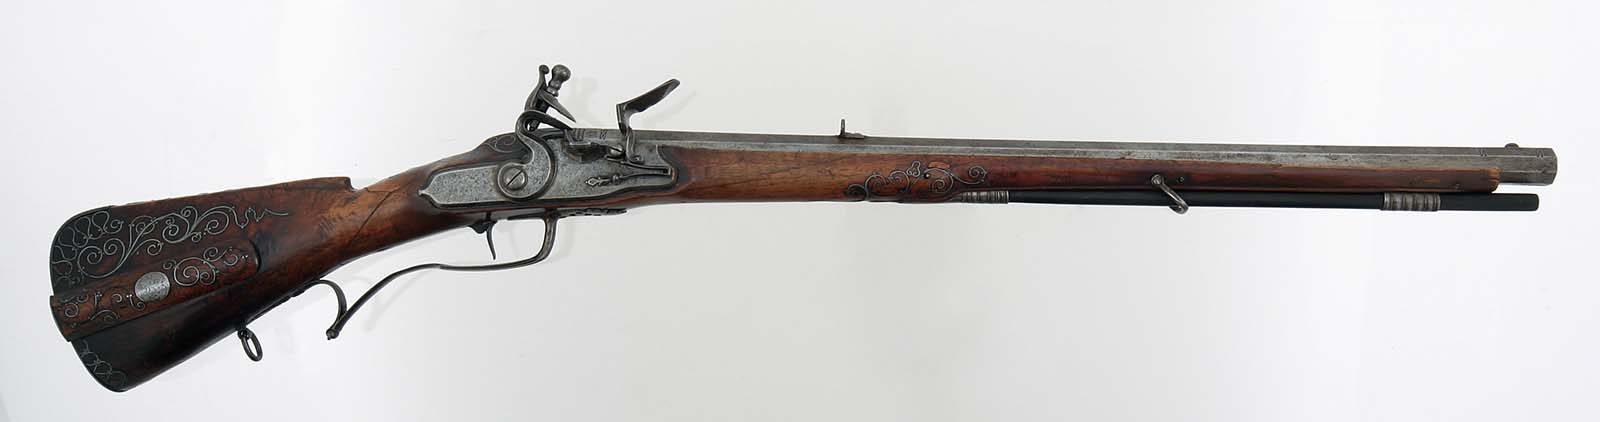 Click the image to view this example of a flintlock system closer. This is a German Flintlock Rifle with an octagon barrel. Gift of Olin Corporation, Winchester Arms Collection. 1988.8.391